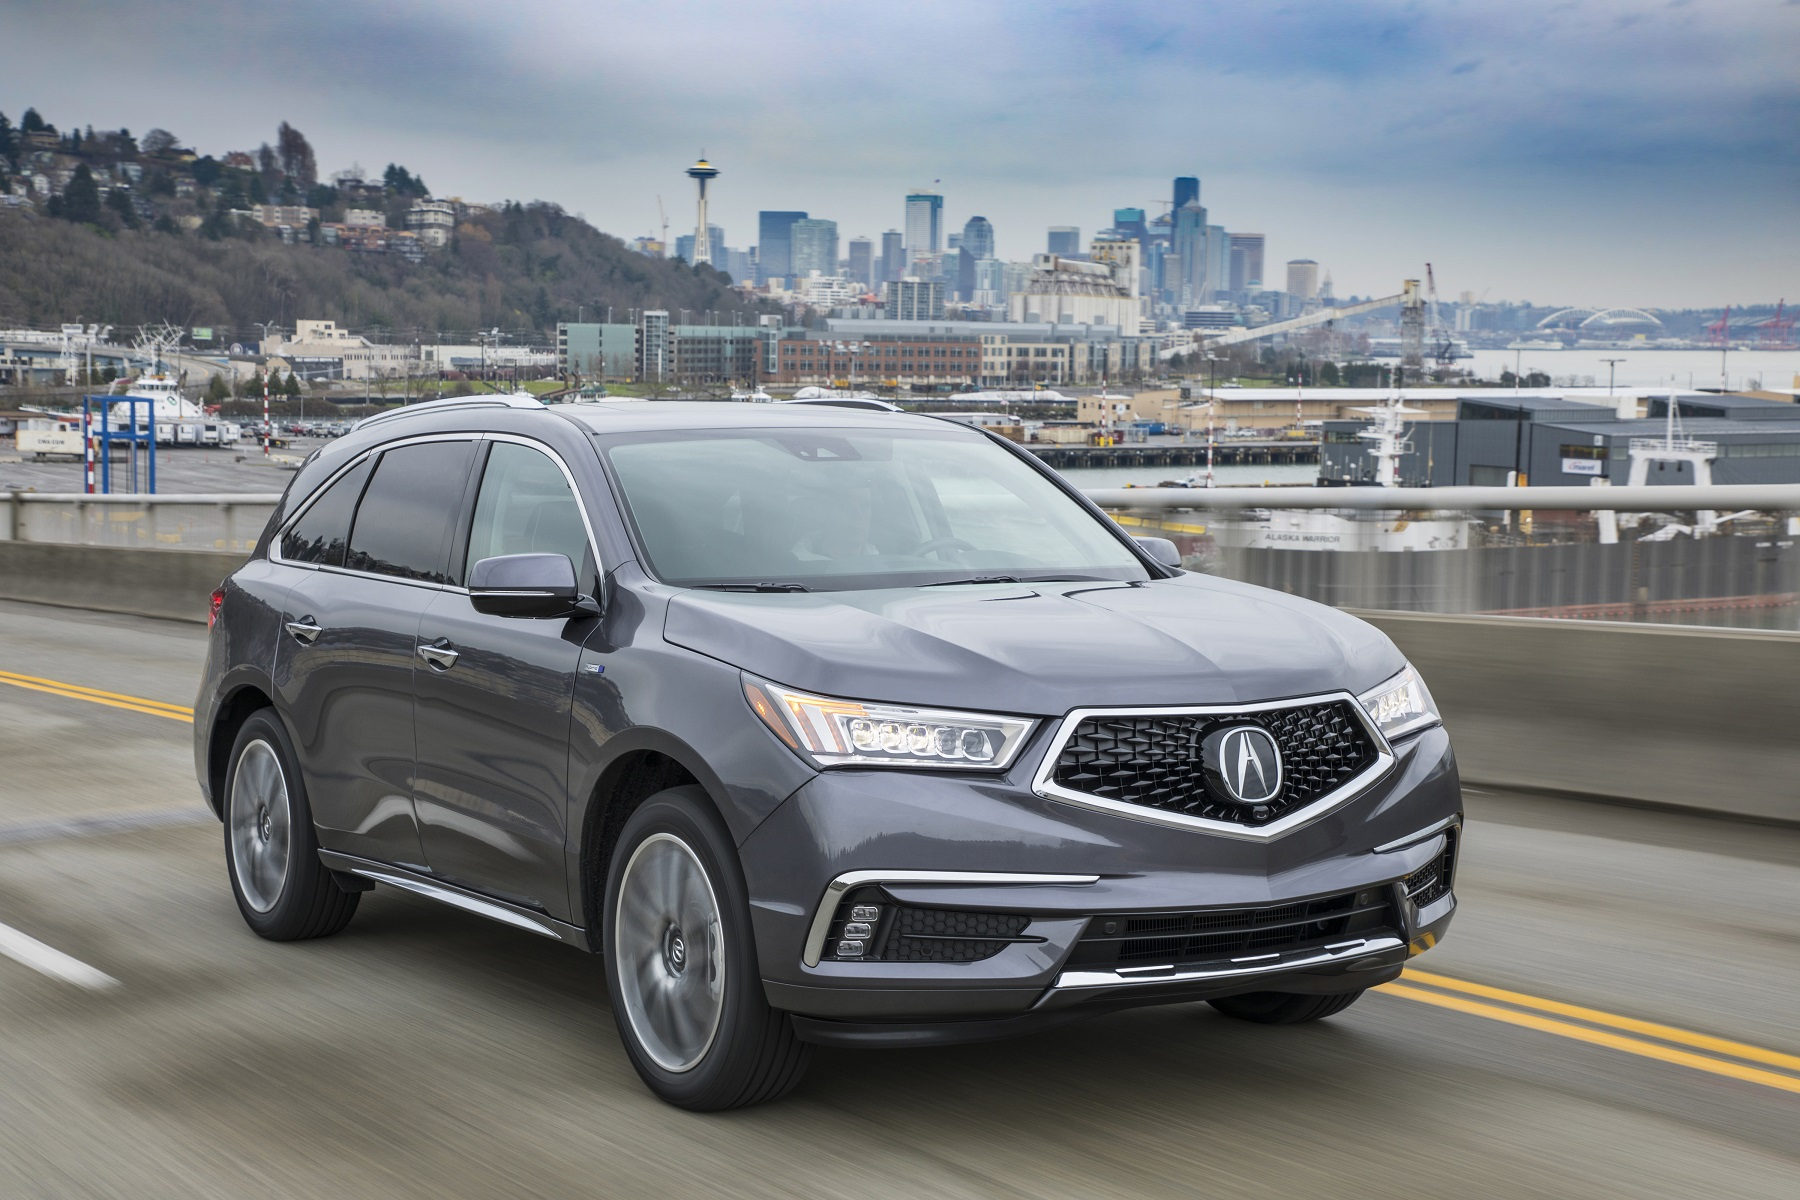 Manufacturer photo: The 2017 Acura MDX Sport Hybrid uses the same basic powertrain as the NSX, though not as powerful